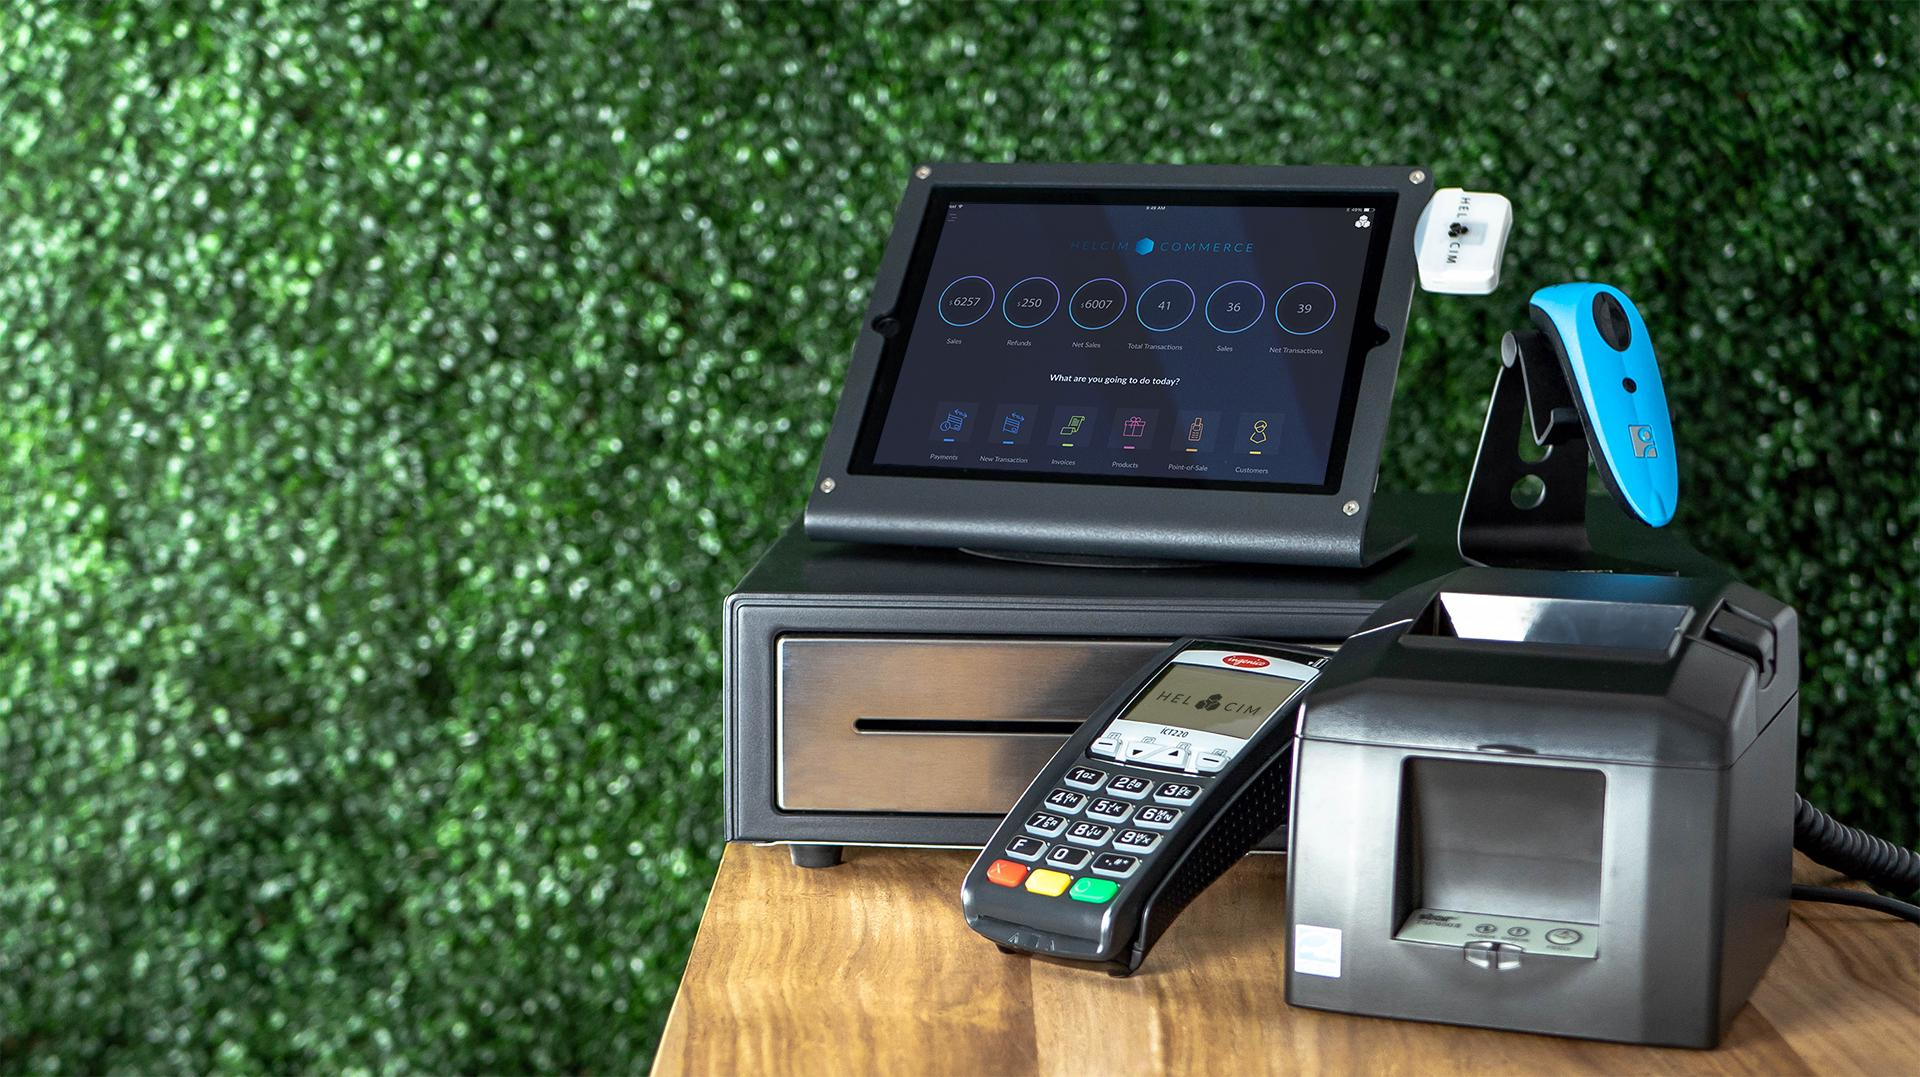 An Ideal POS Setup According to Helcim's CEO